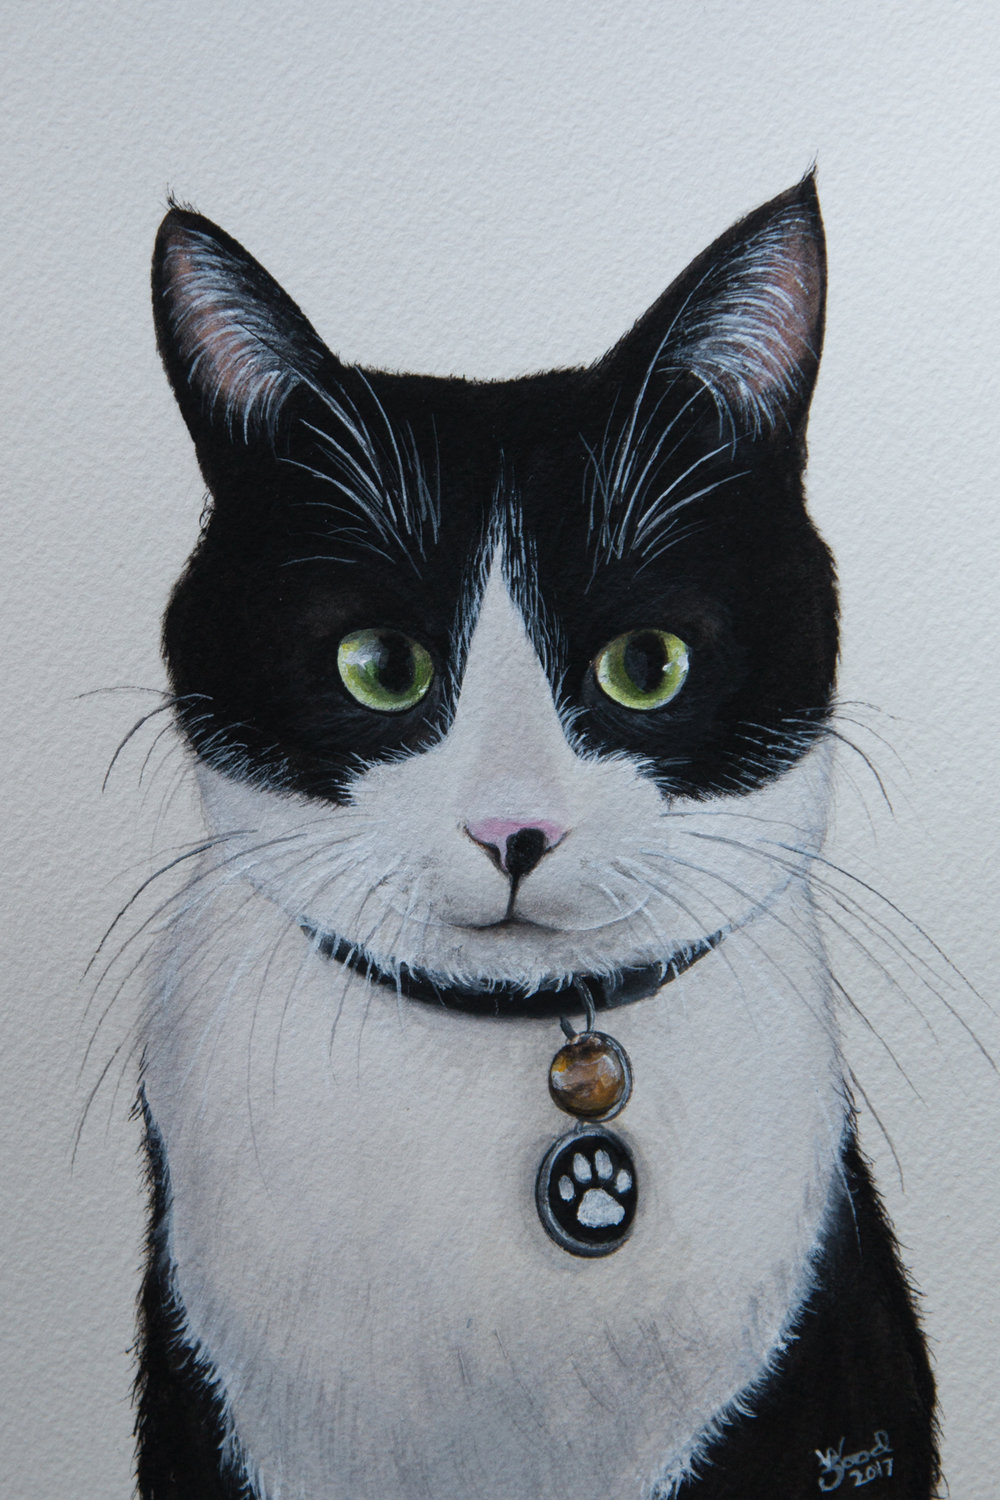 We couldn't have been more thrilled with the portrait of our dear Smudge. What we love most is the way Zoe captured her eyes so realistically (they're a bit googly) and her Batman mask on her face. I would recommend Zoe's incredible artistic talents without hesitation to anyone wanting to immortalise their special furry friend. - Matthew and Toby Newman-Mellor, Williamstown